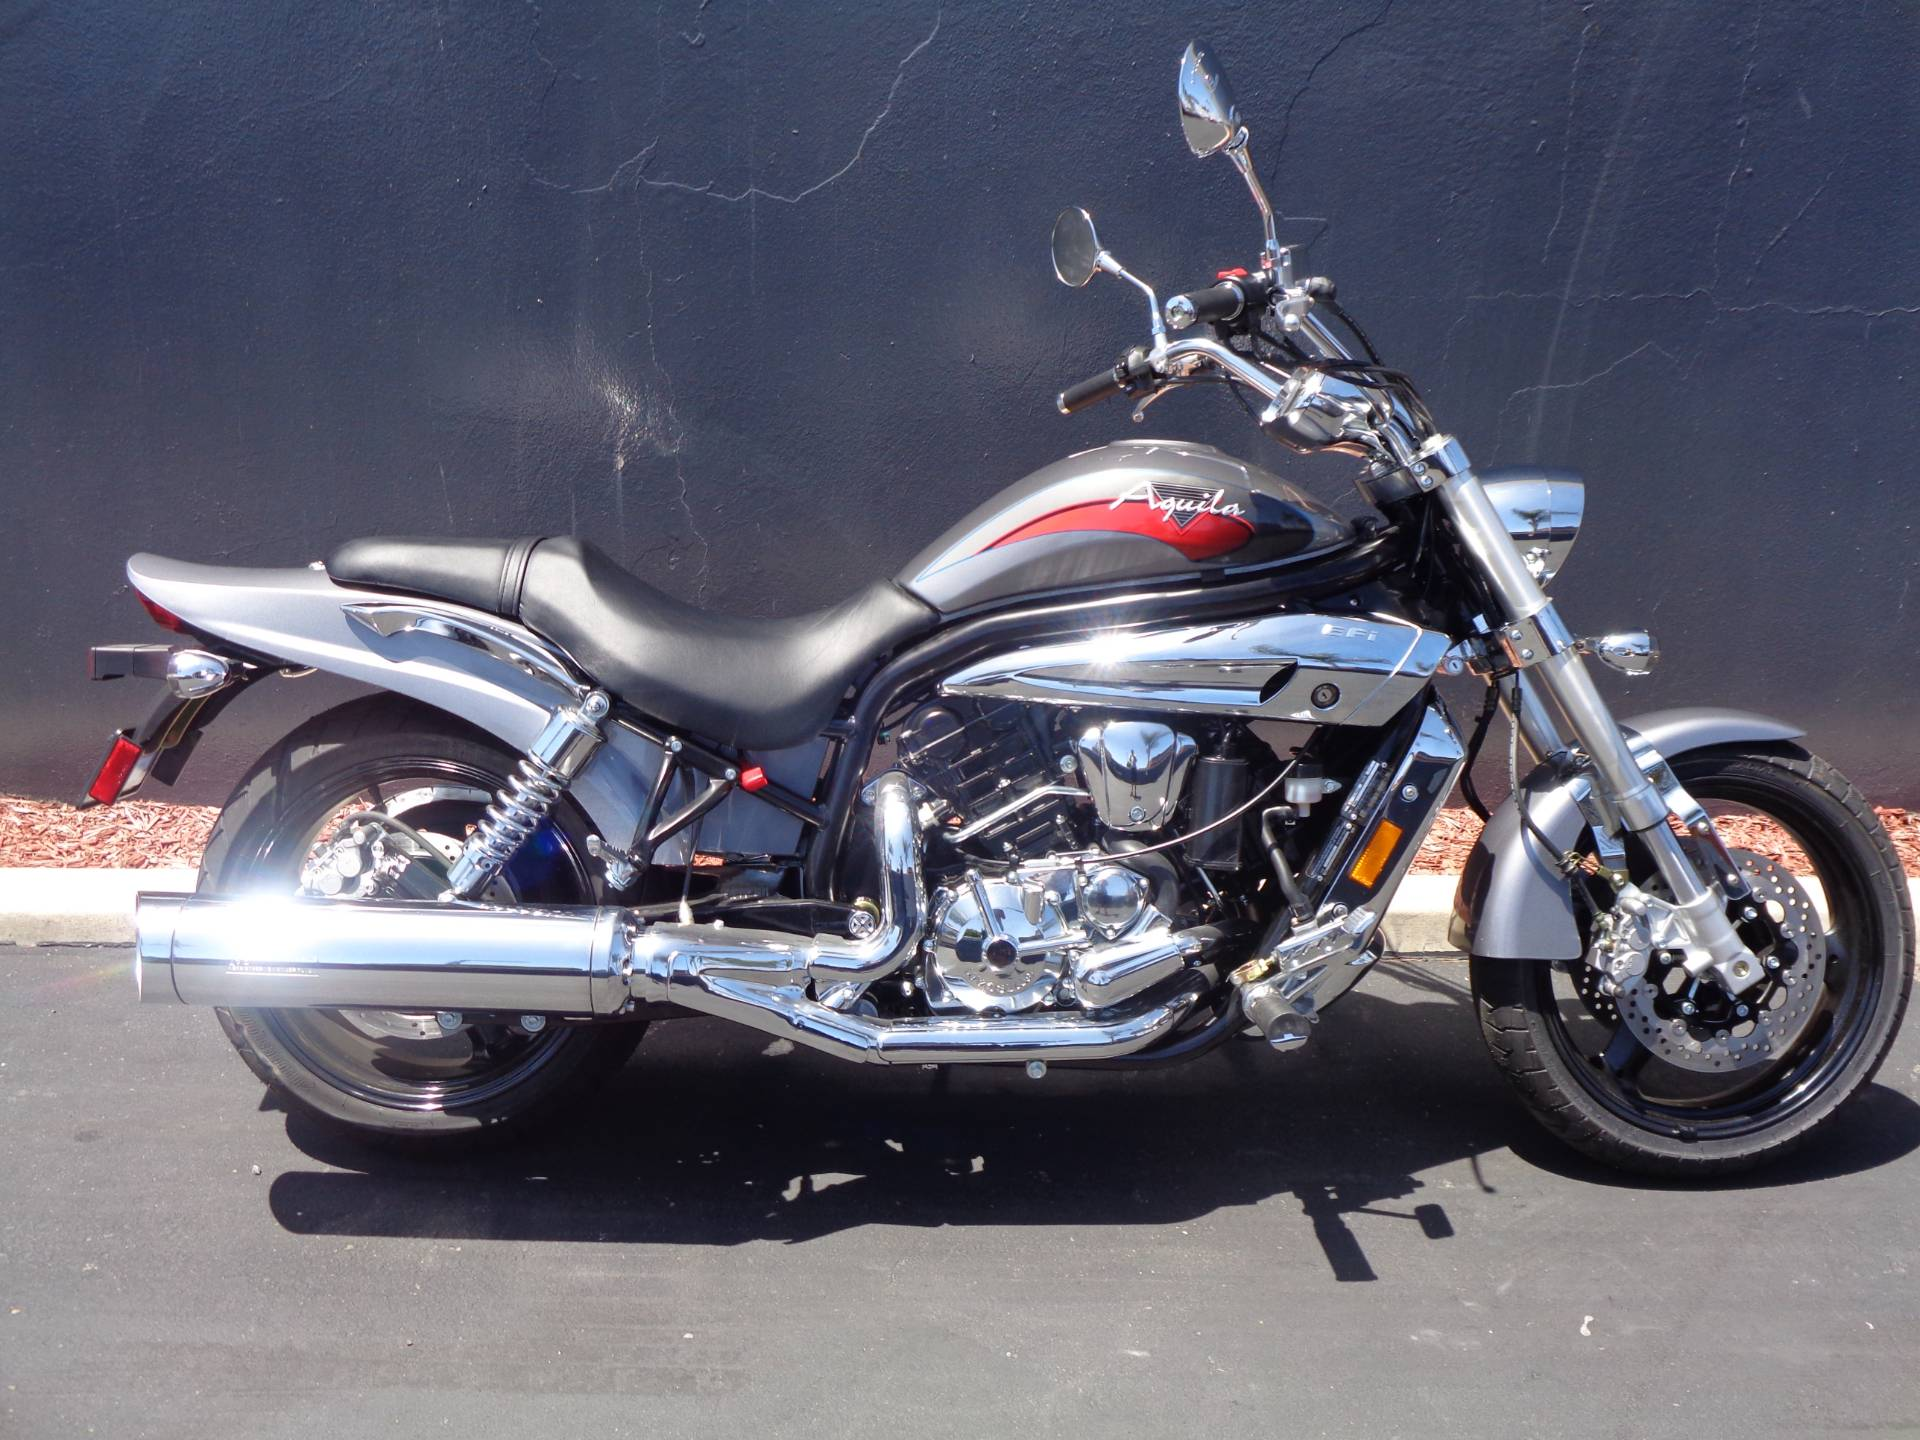 2010 Hyosung GV650 in Chula Vista, California - Photo 1